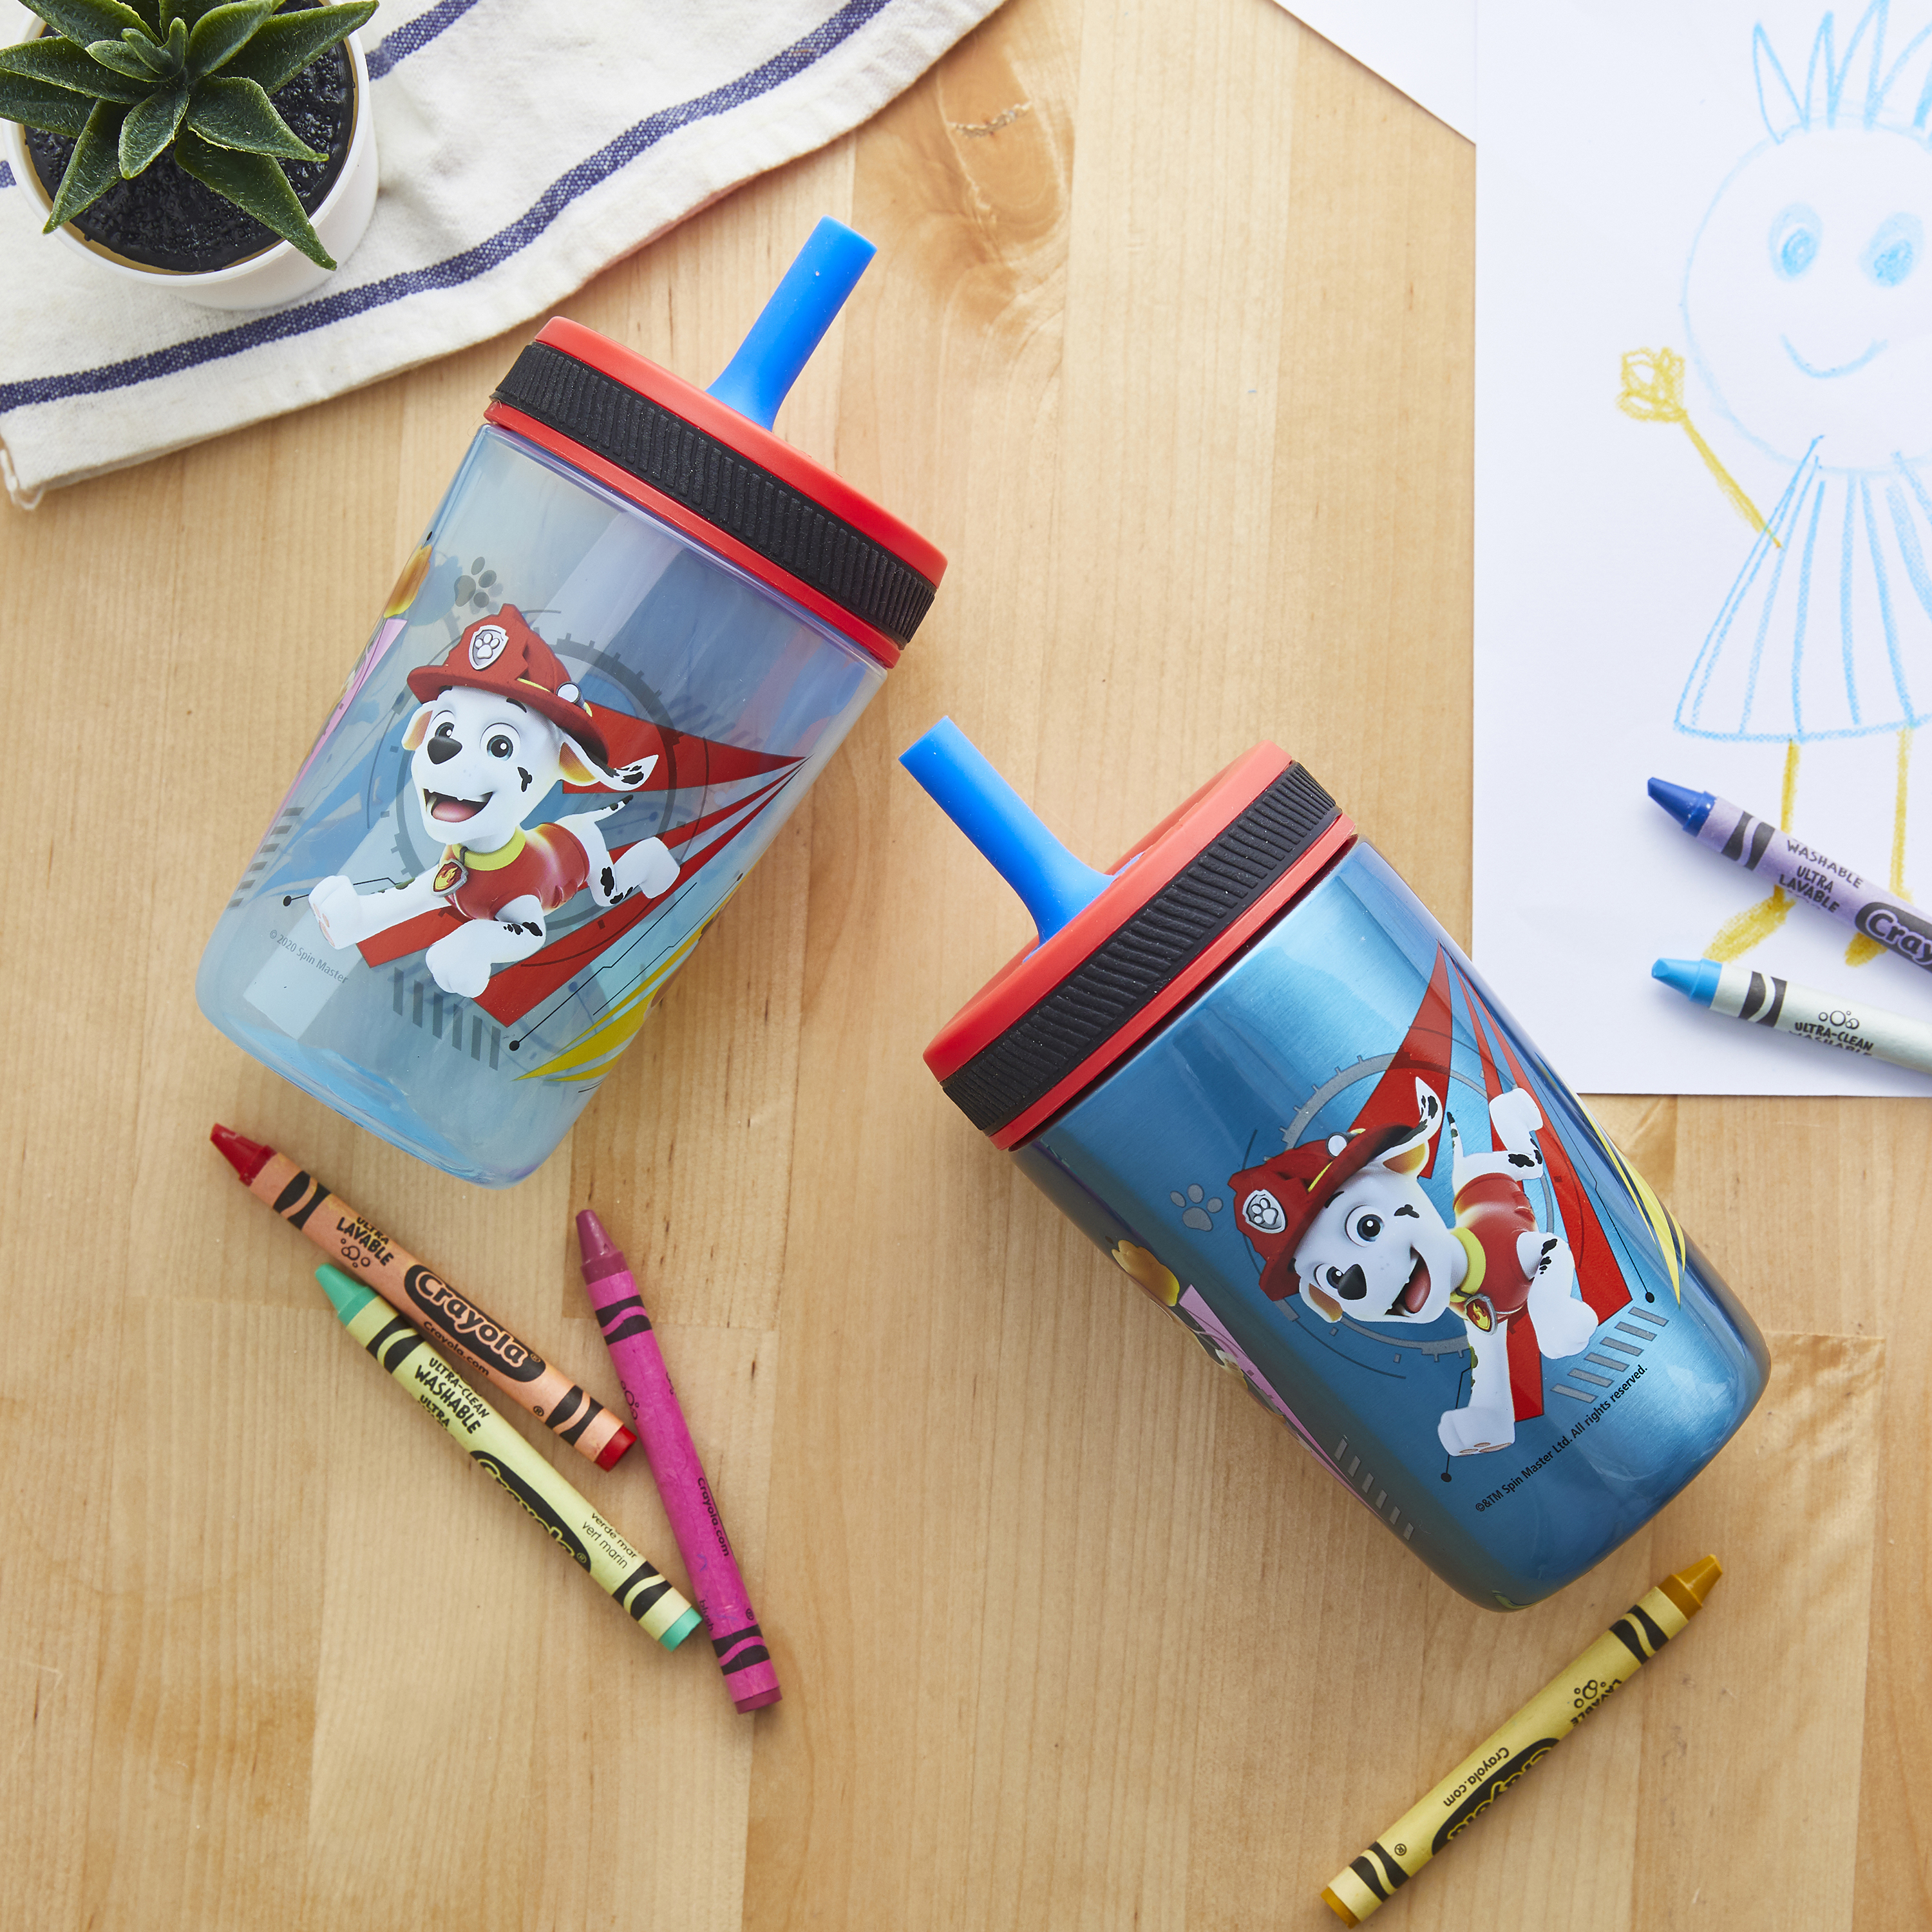 Paw Patrol 15  ounce Plastic Tumbler, Chase, Skye, Marshall and Friends, 3-piece set slideshow image 6